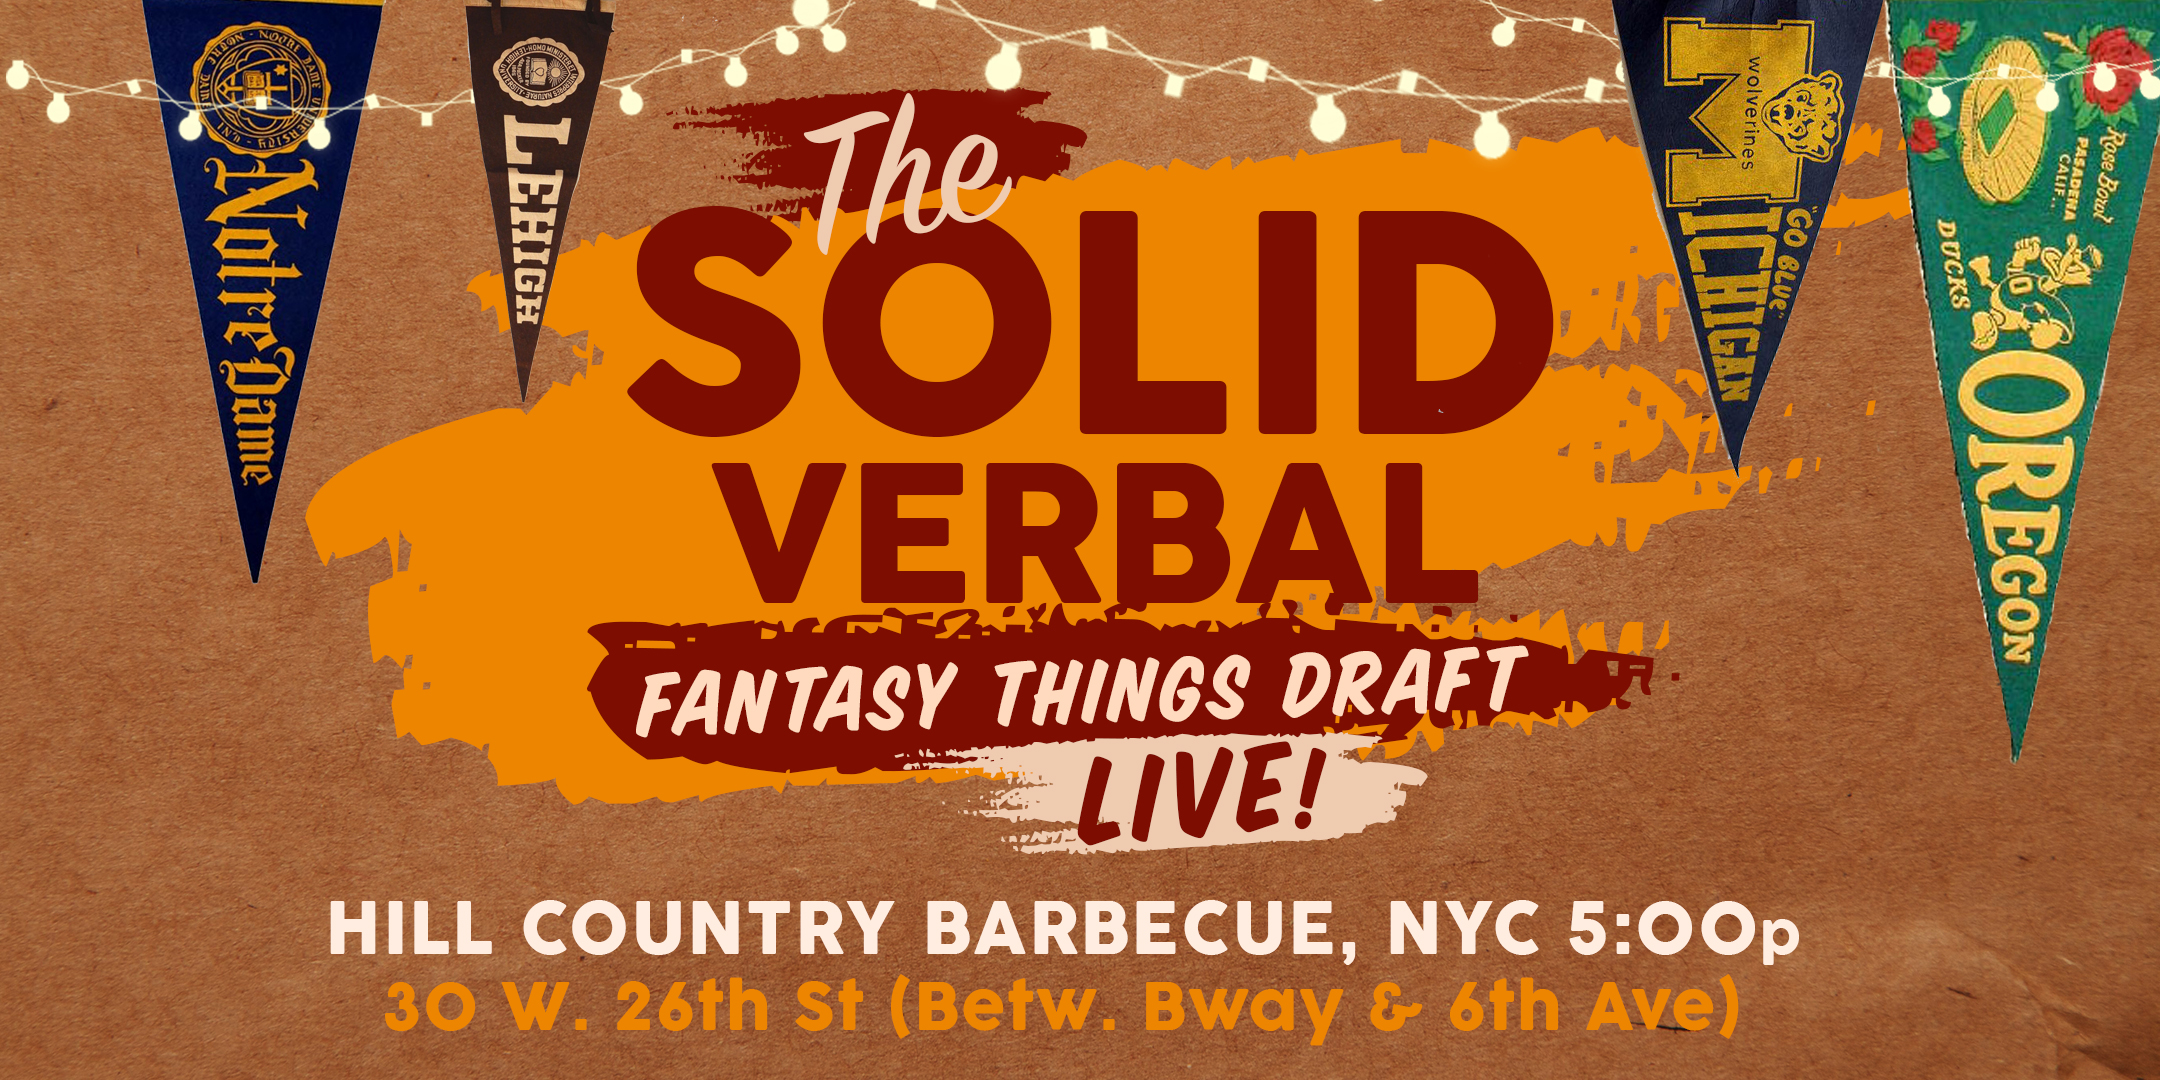 solidverbal.com - Fantasy Things Draft (Live from NYC)